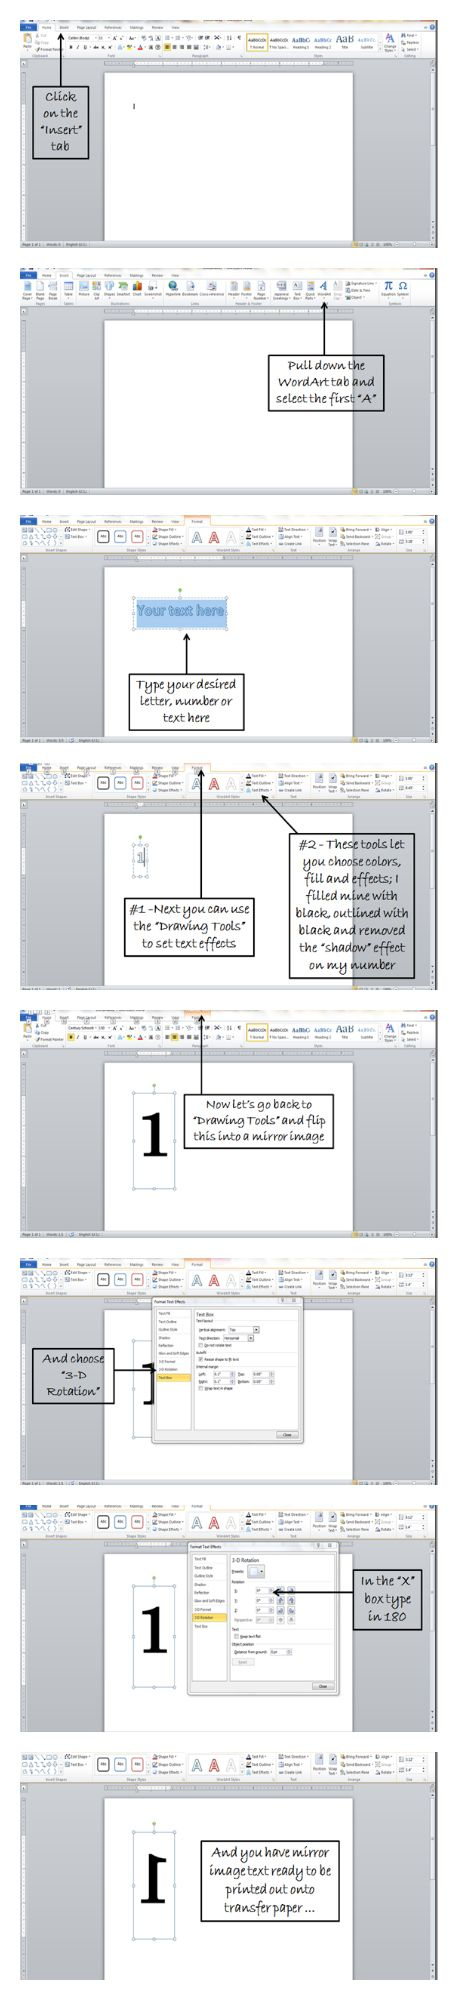 How To Make Mirror Image Text In Word: Step-by-step easy to follow tutorial on how to make words, lettter, and images mirror image for transfer